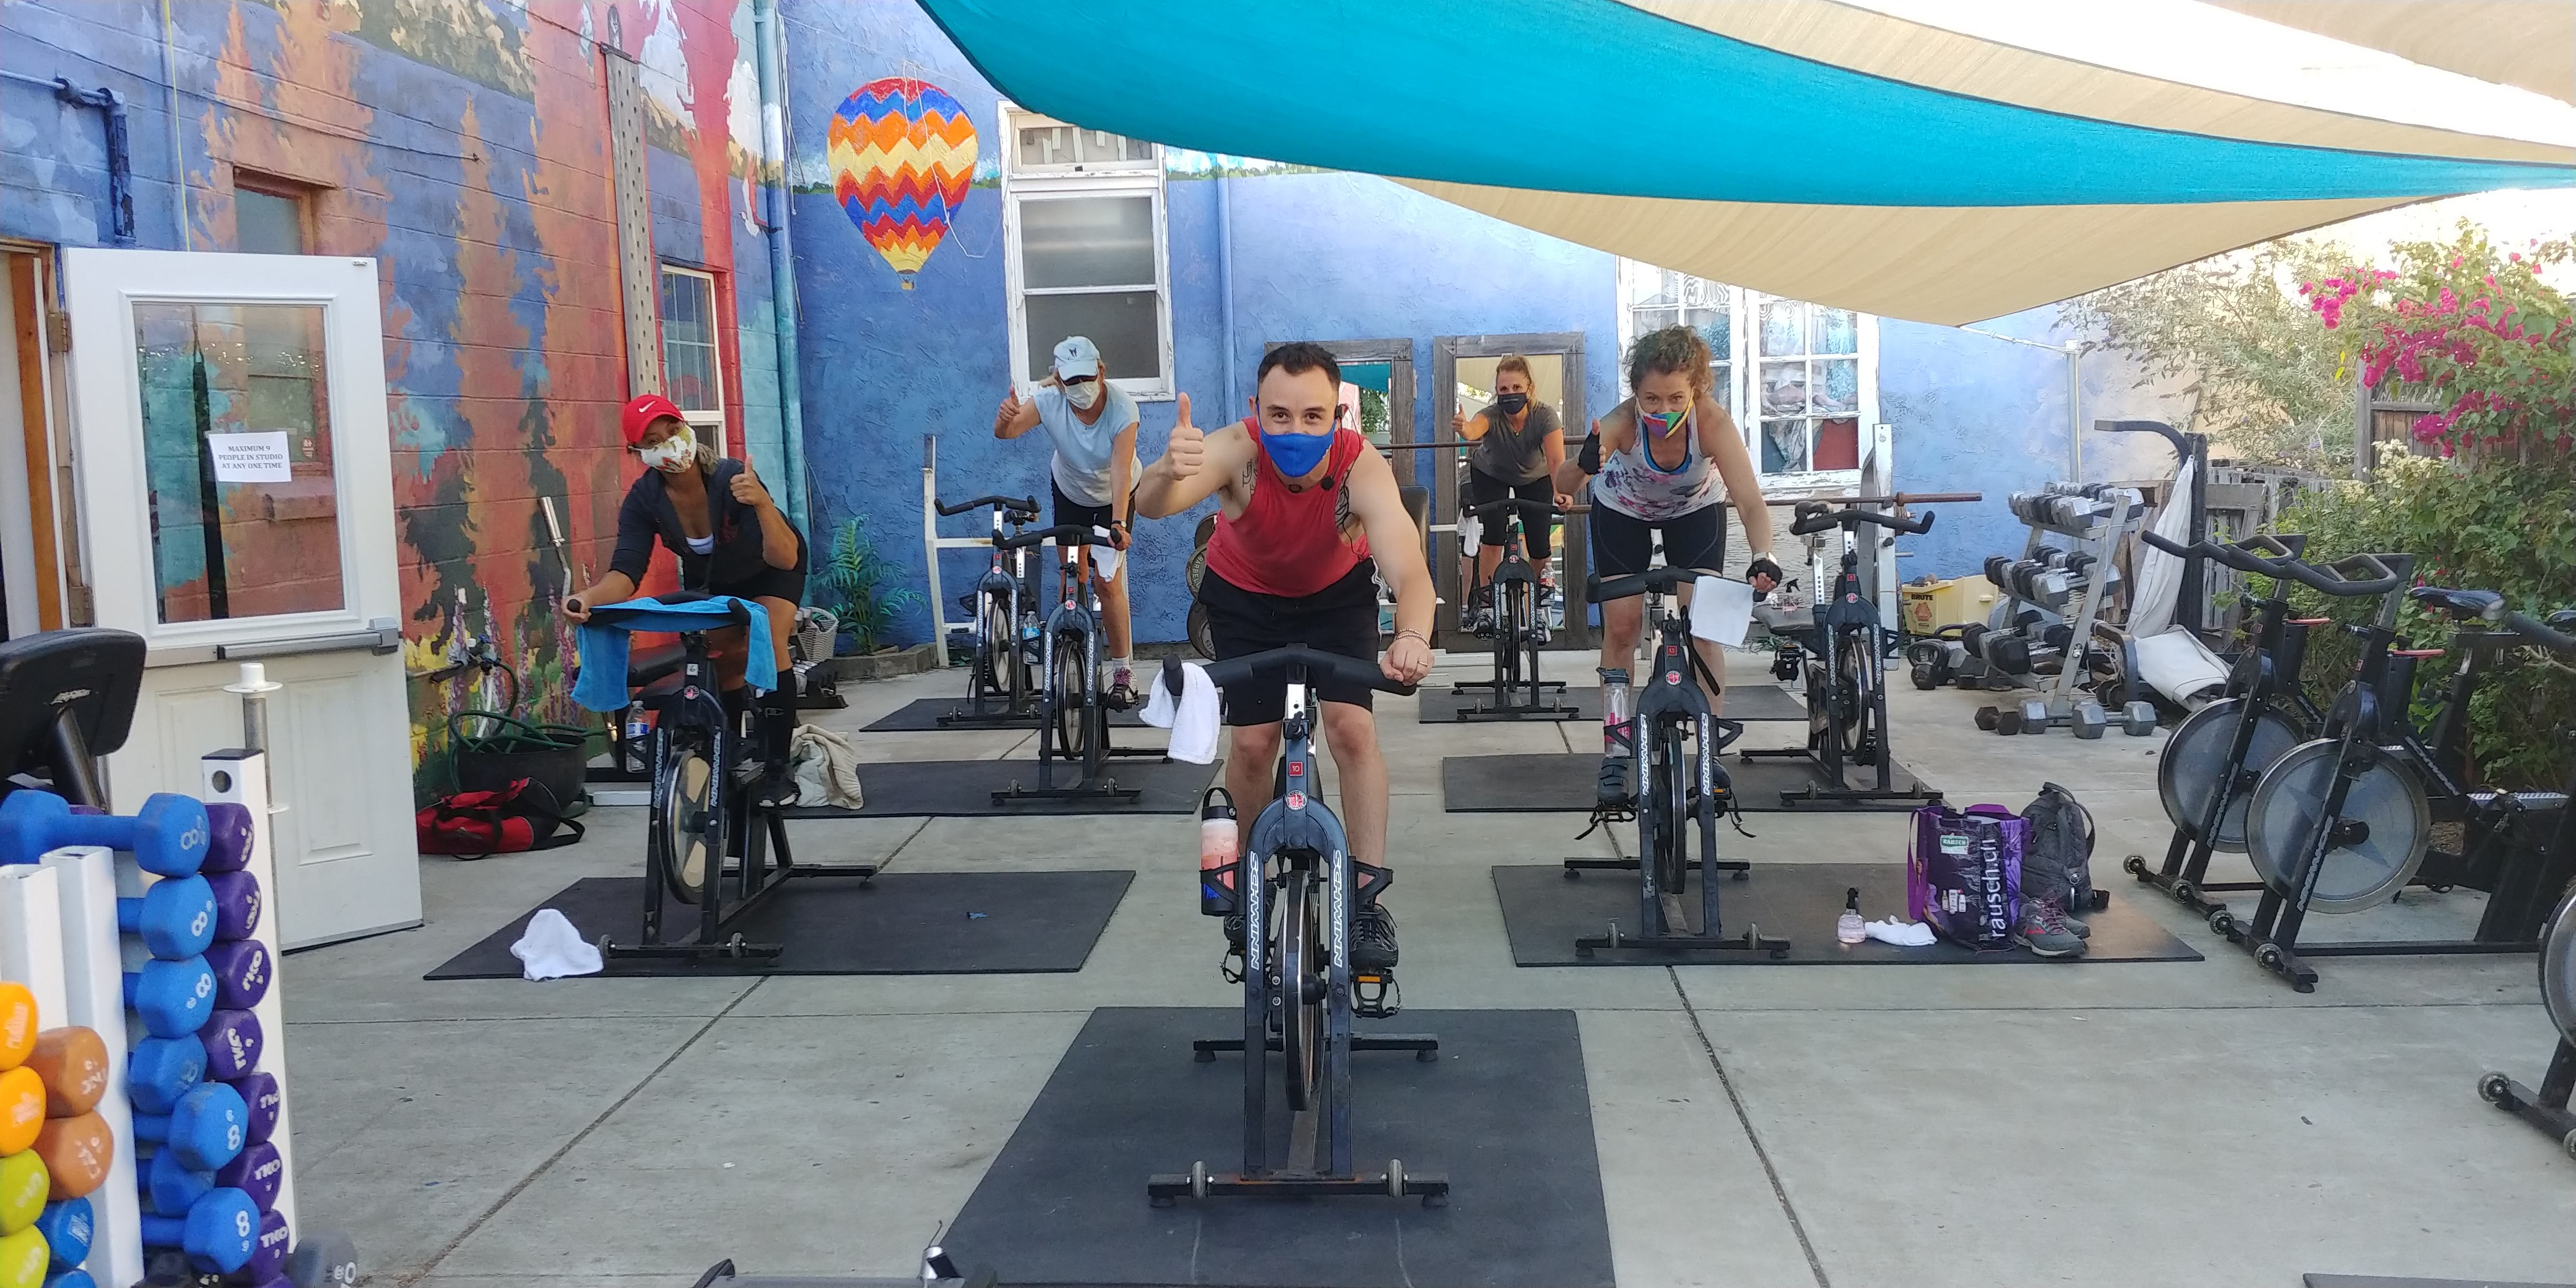 Benicia Gyms – Working it out